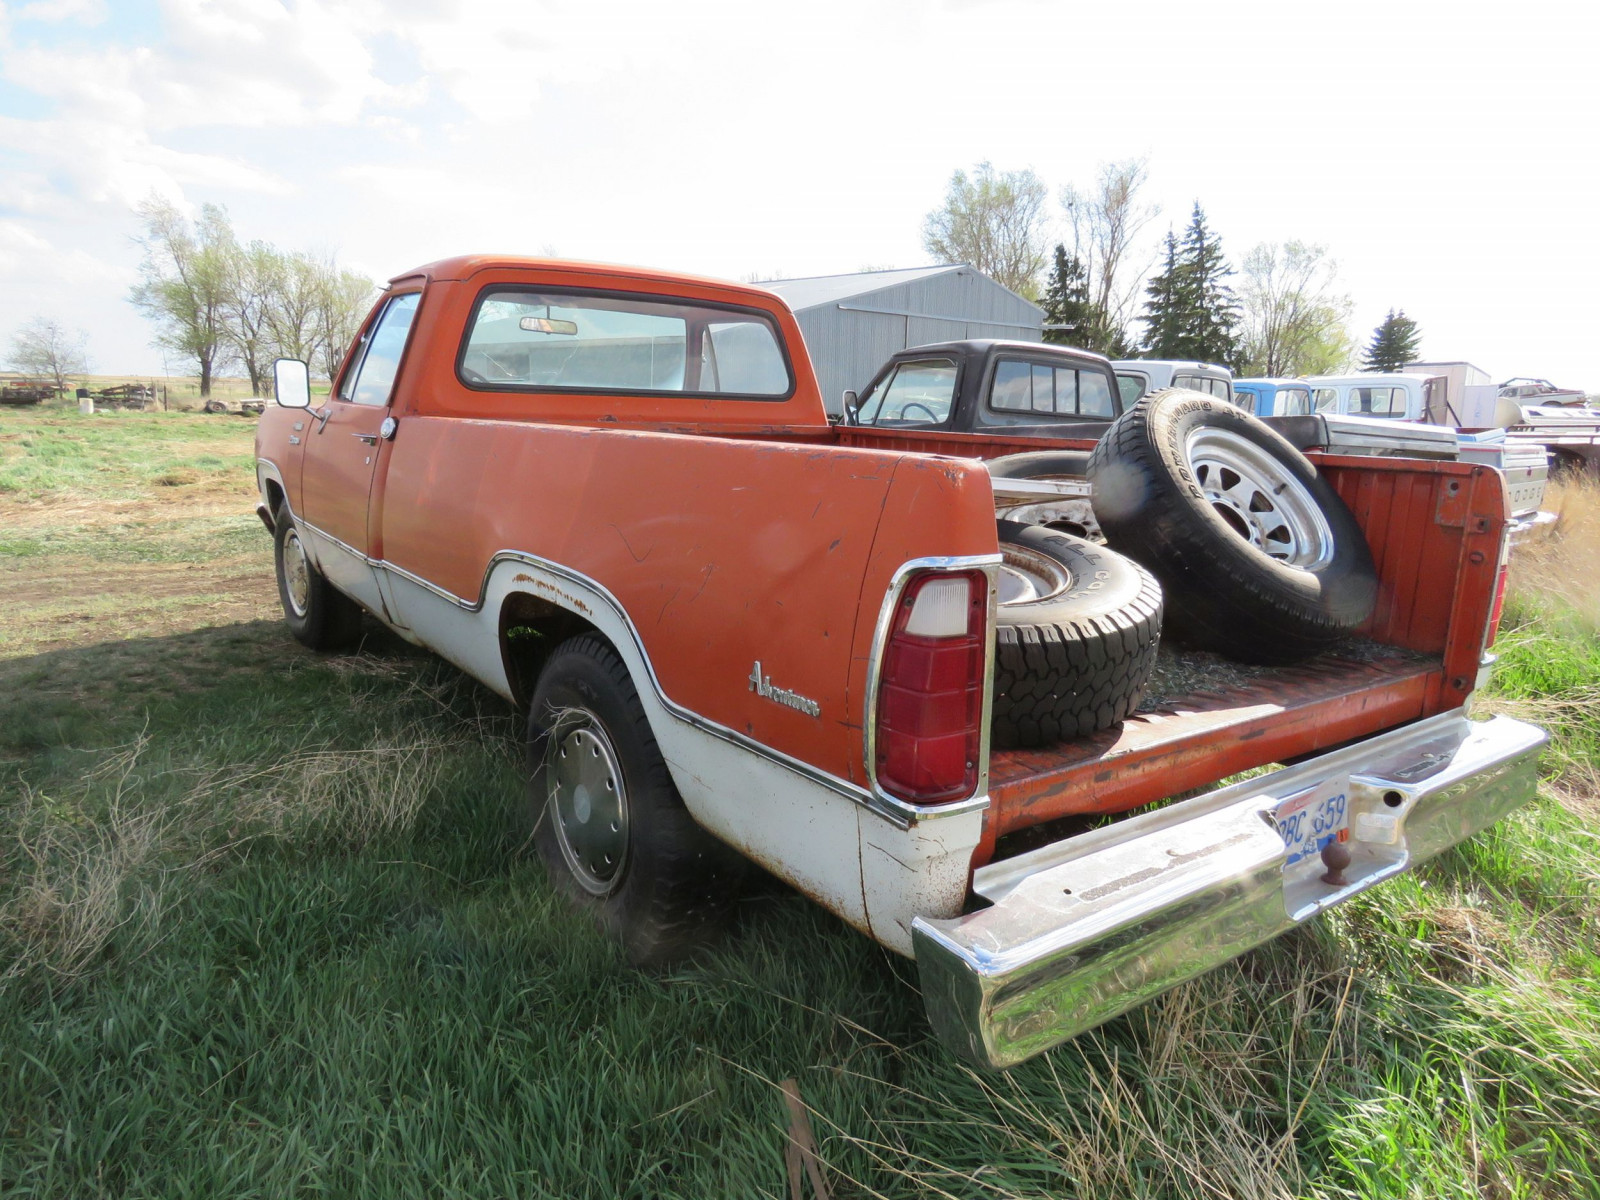 1973 Dodge D200 Pickup - Image 4